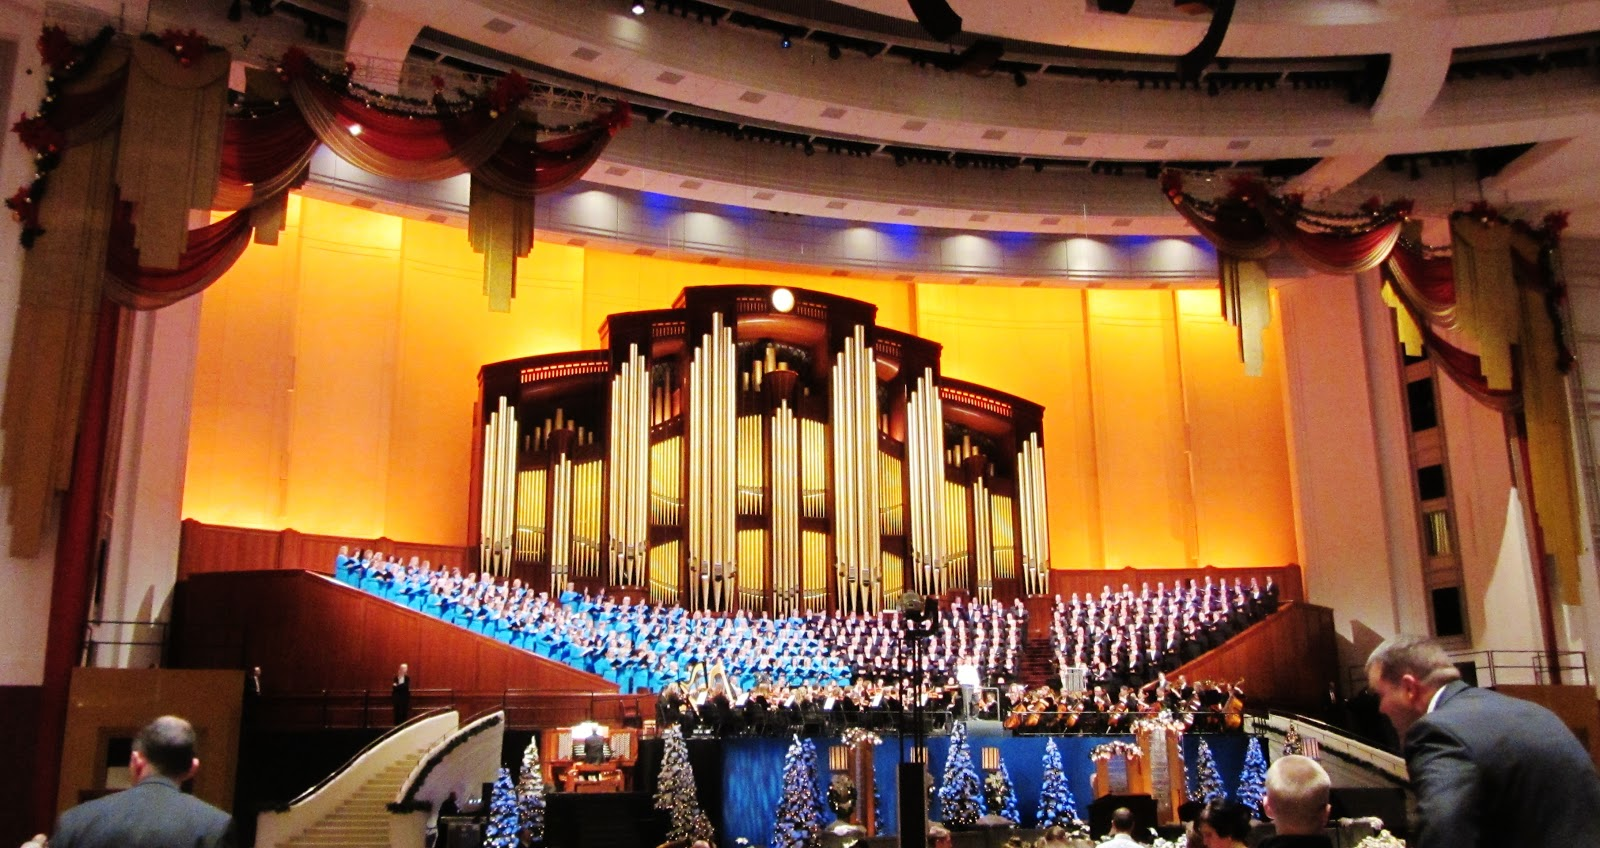 Sweet Dreams Are Made of These...: Mormon Tabernacle Choir